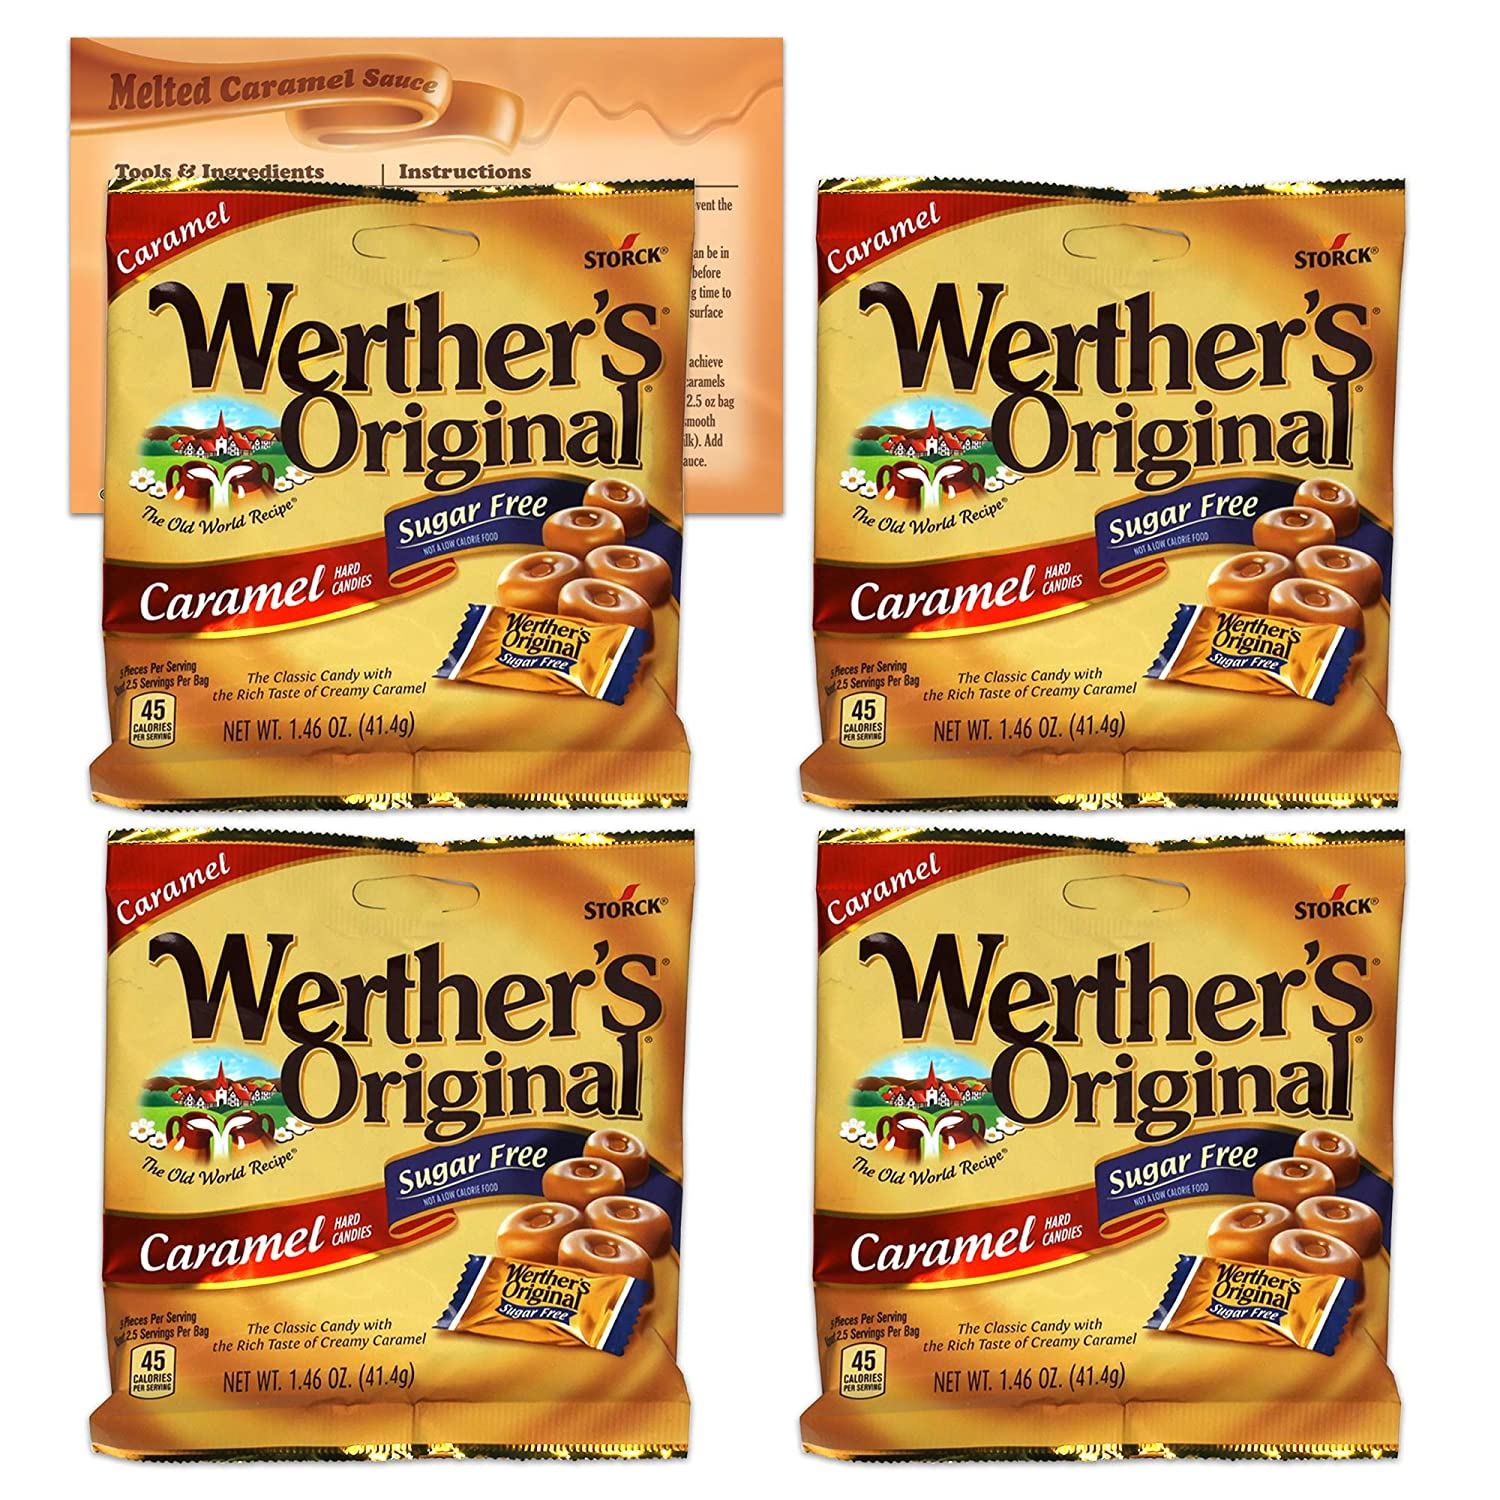 Werthers Sugar Free Hard Candy | 4 Pack of Werthers Original Hard Candy - 1.46 Ounce Each Bag | Diabetic Snacks, Low Carb Snacks, Keto Candy | Bundled with Ballard Caramel Sauce Recipe Card